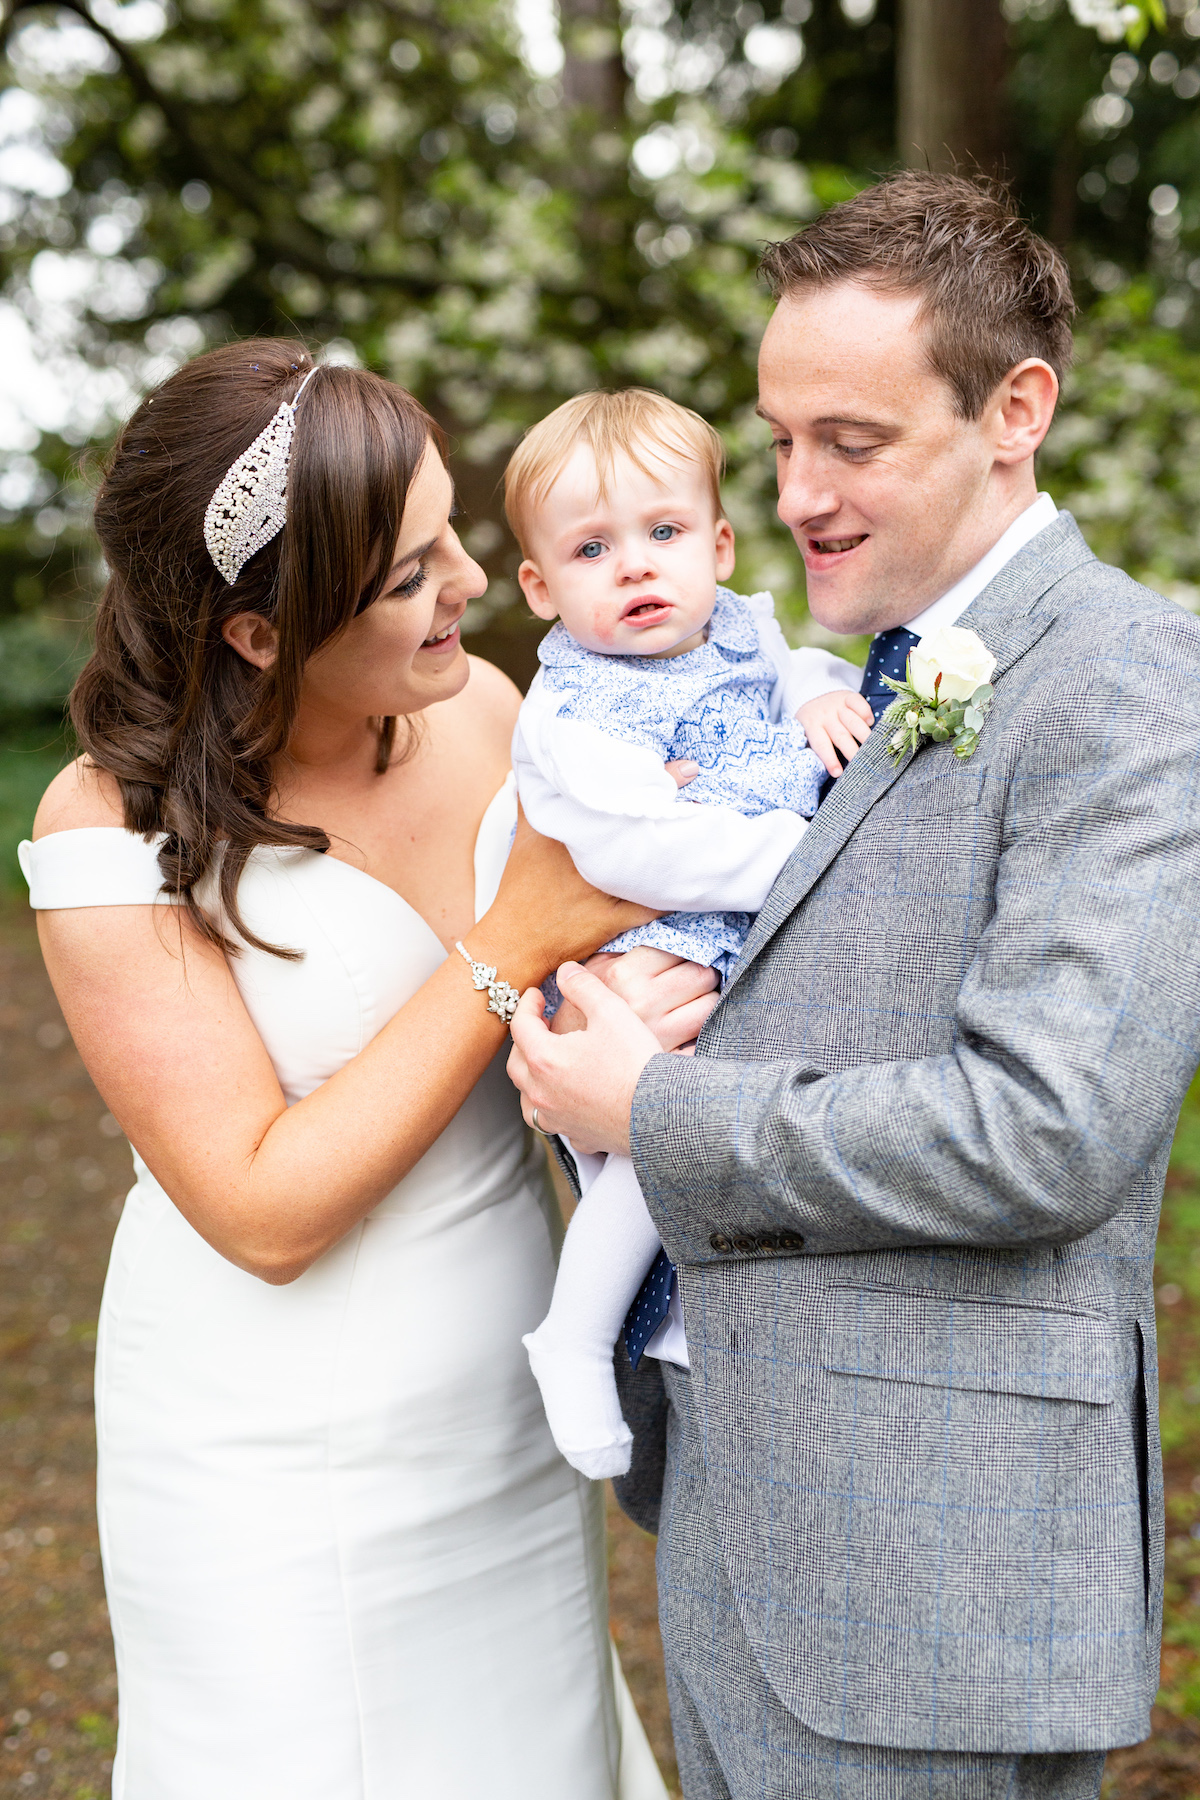 Middleton Lodge Wedding Photographer, Wedding flowers middleton lodge, wedding reception, bride portraits, wedding breakfast middleton lodge, bride and groom